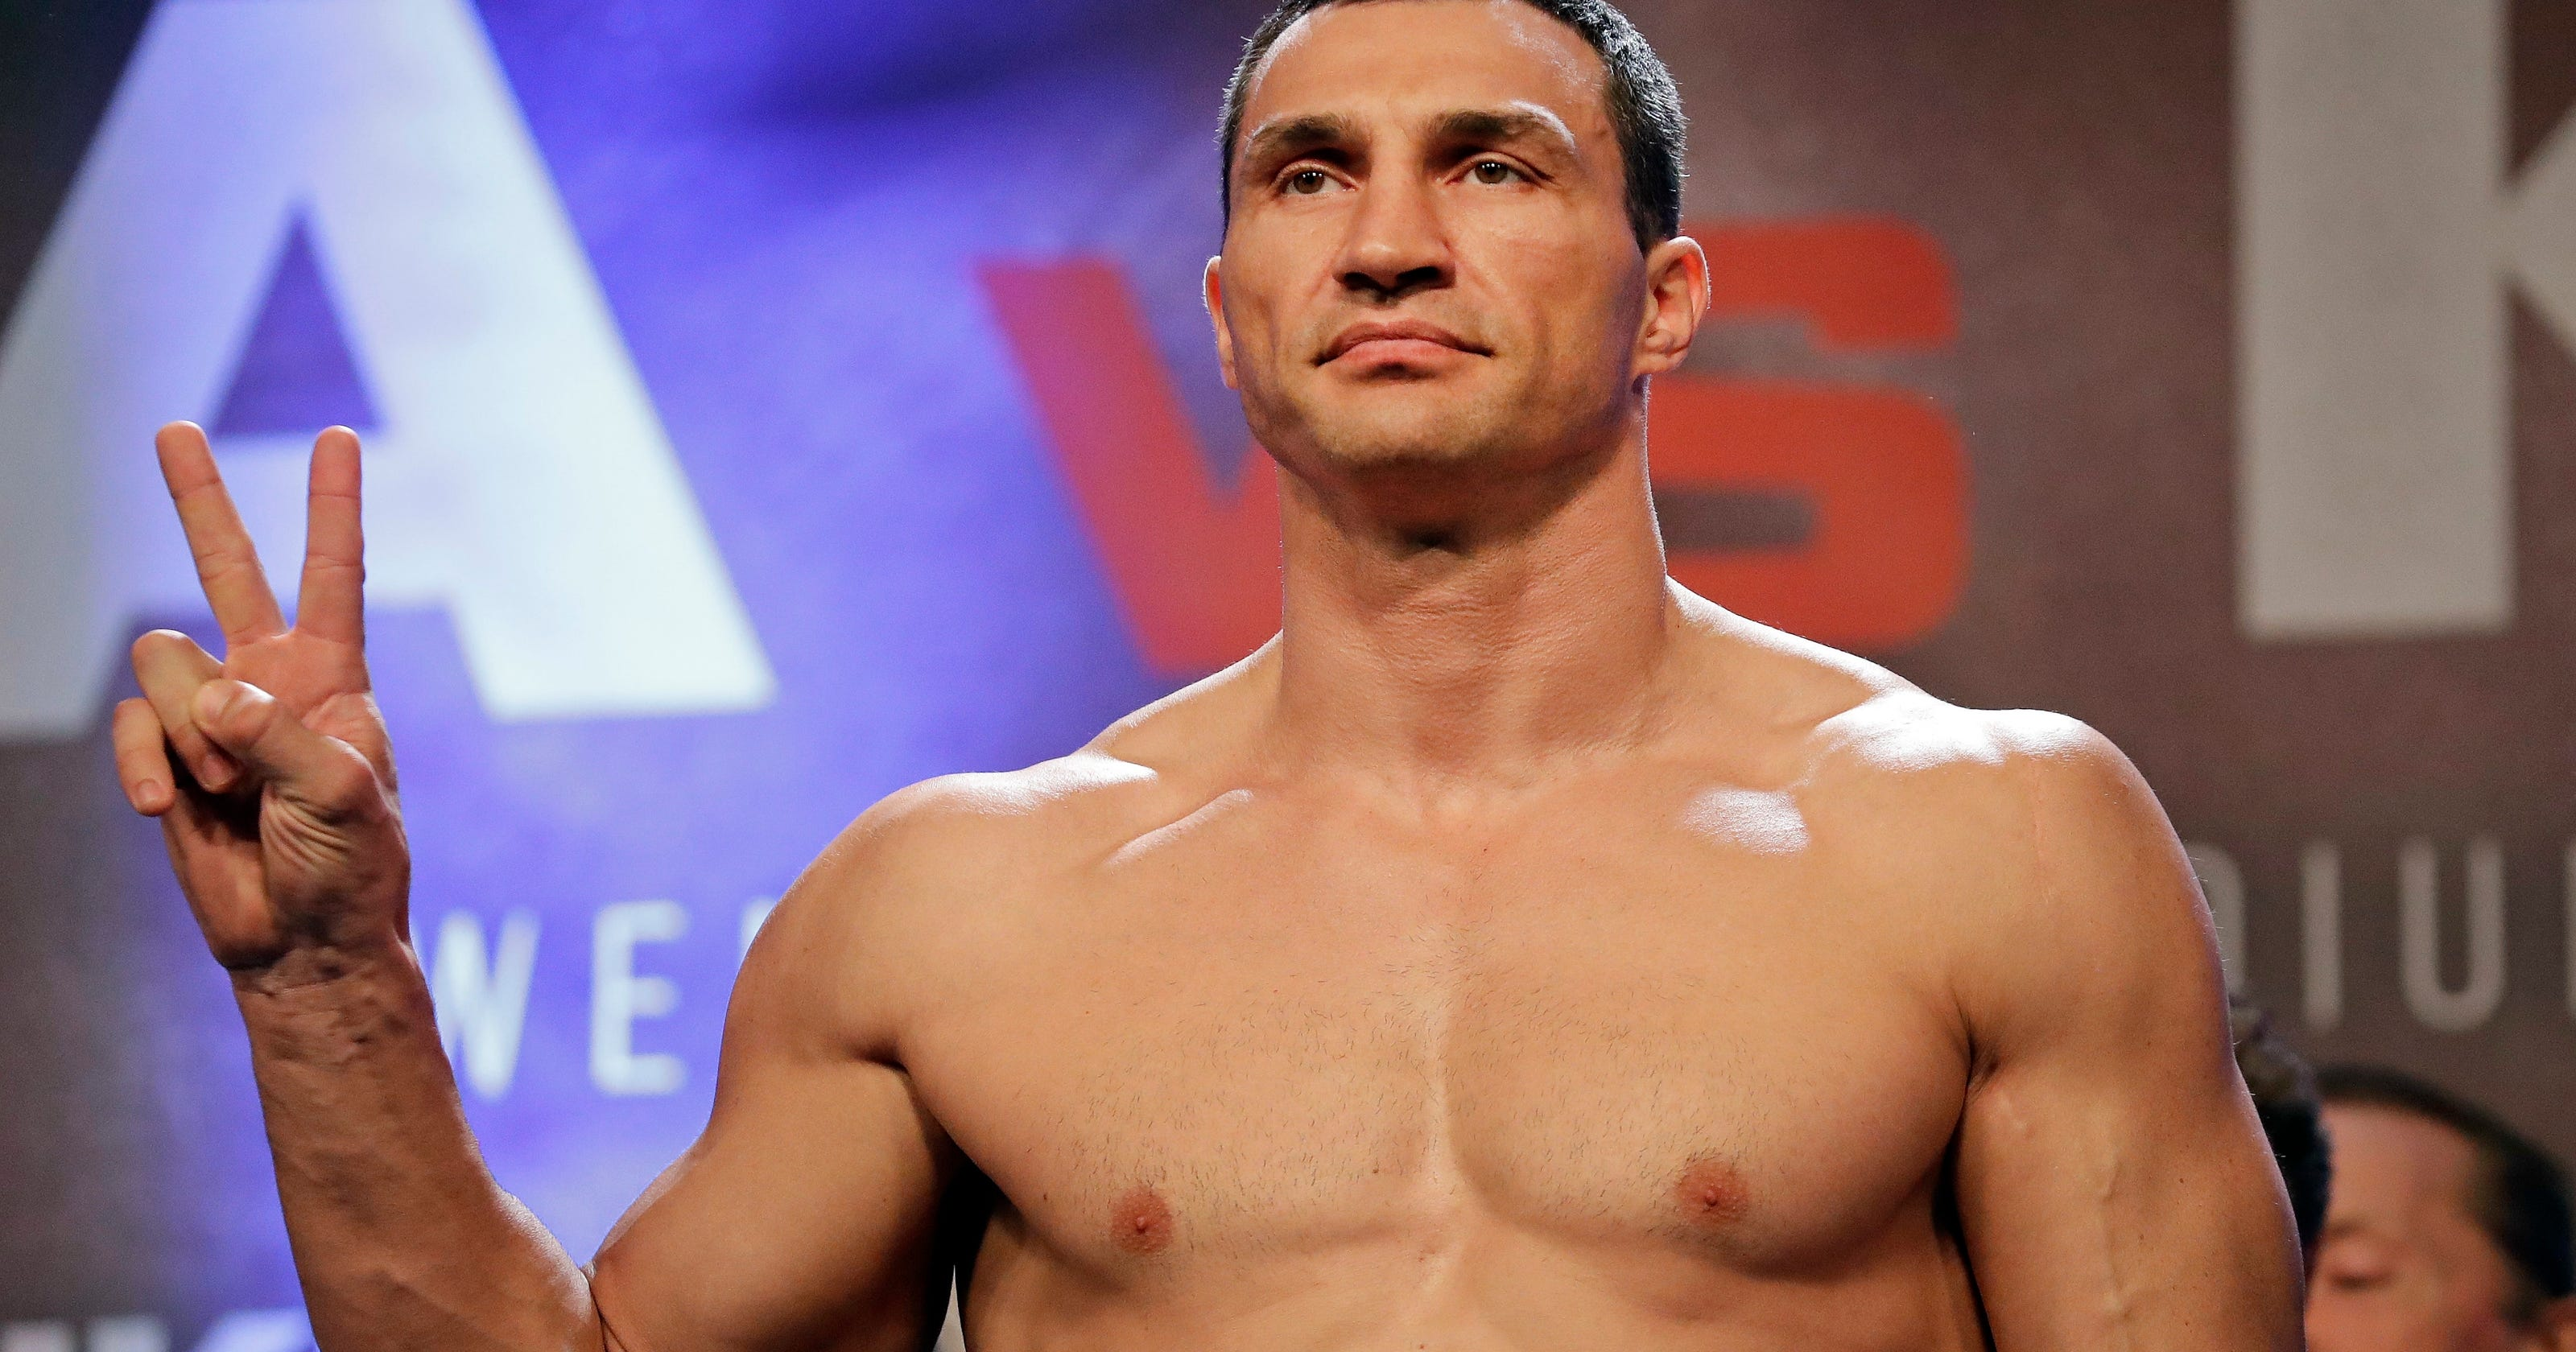 315b697fb2c Klitschko was dominant but never really got his due